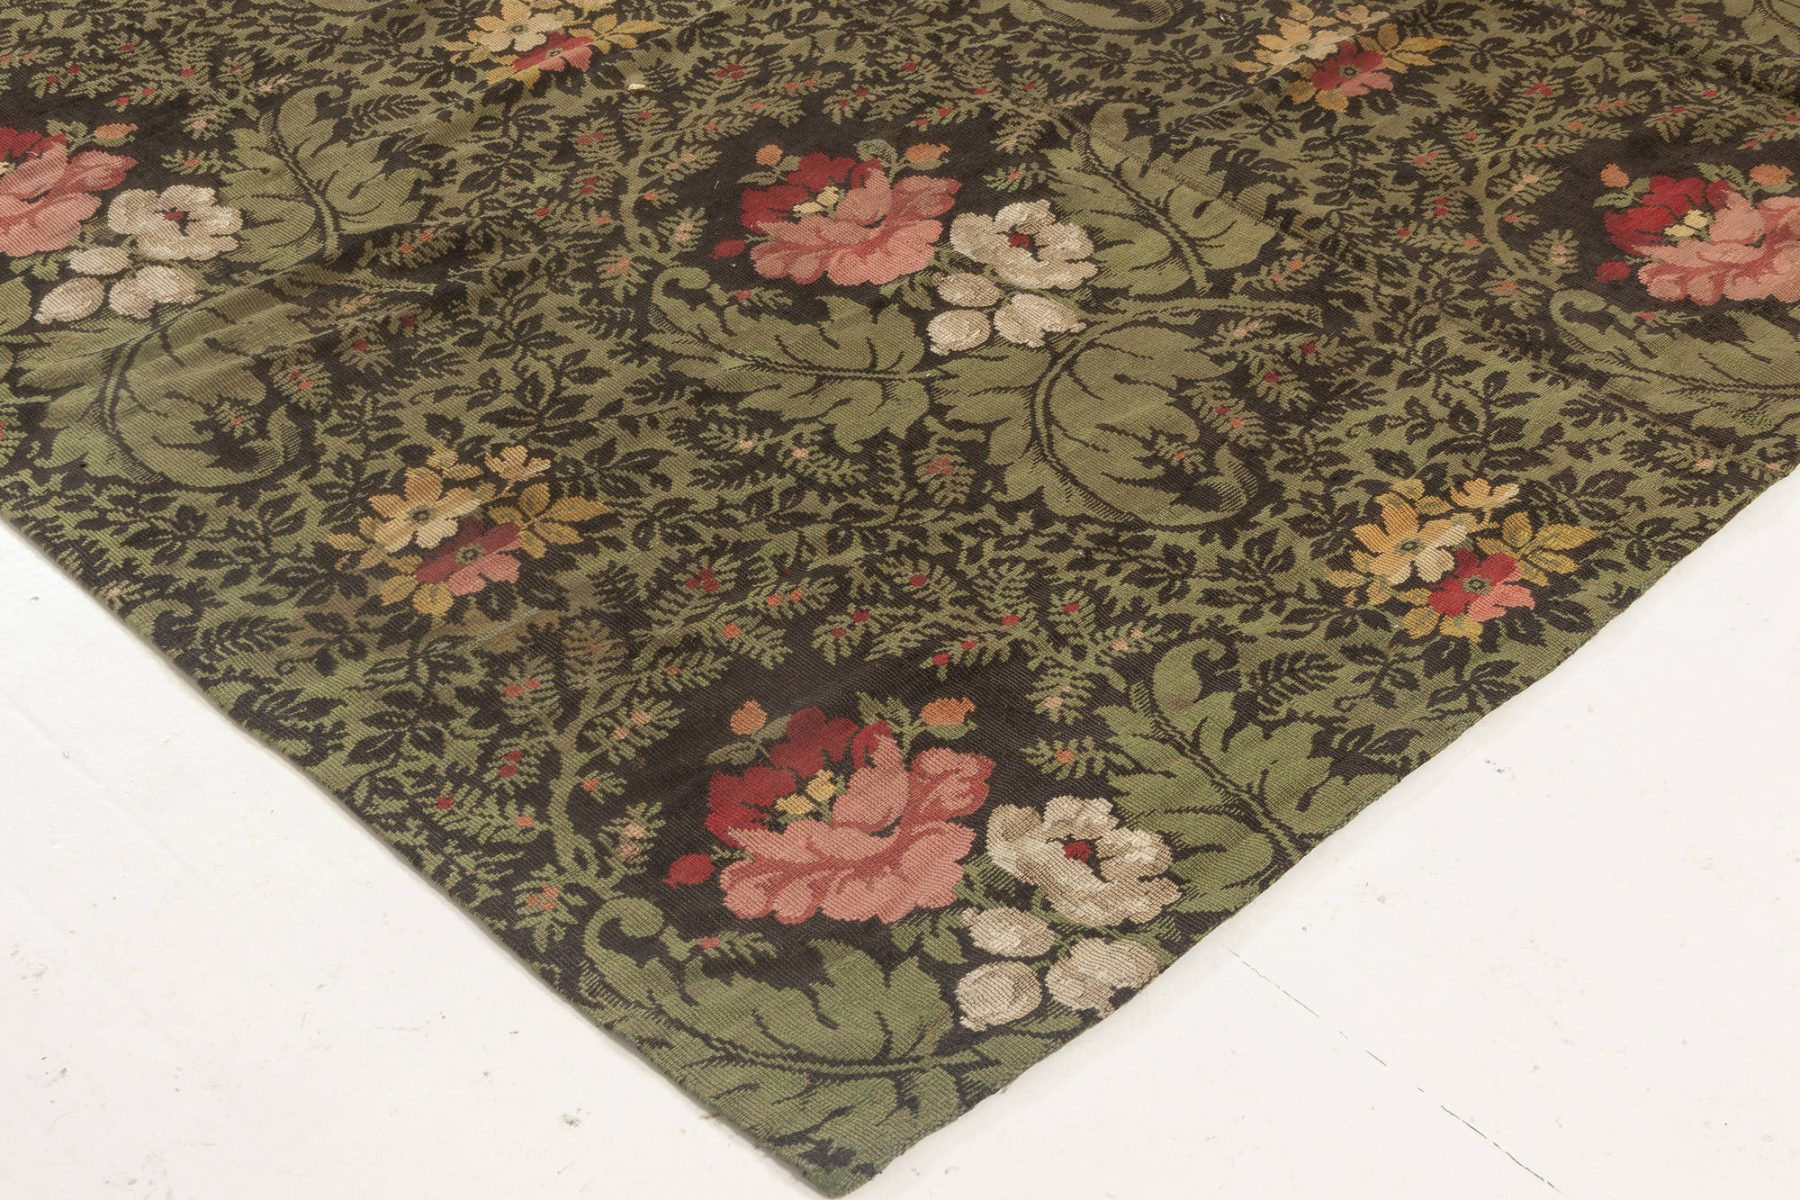 Antique French Needlework Rug BB6947